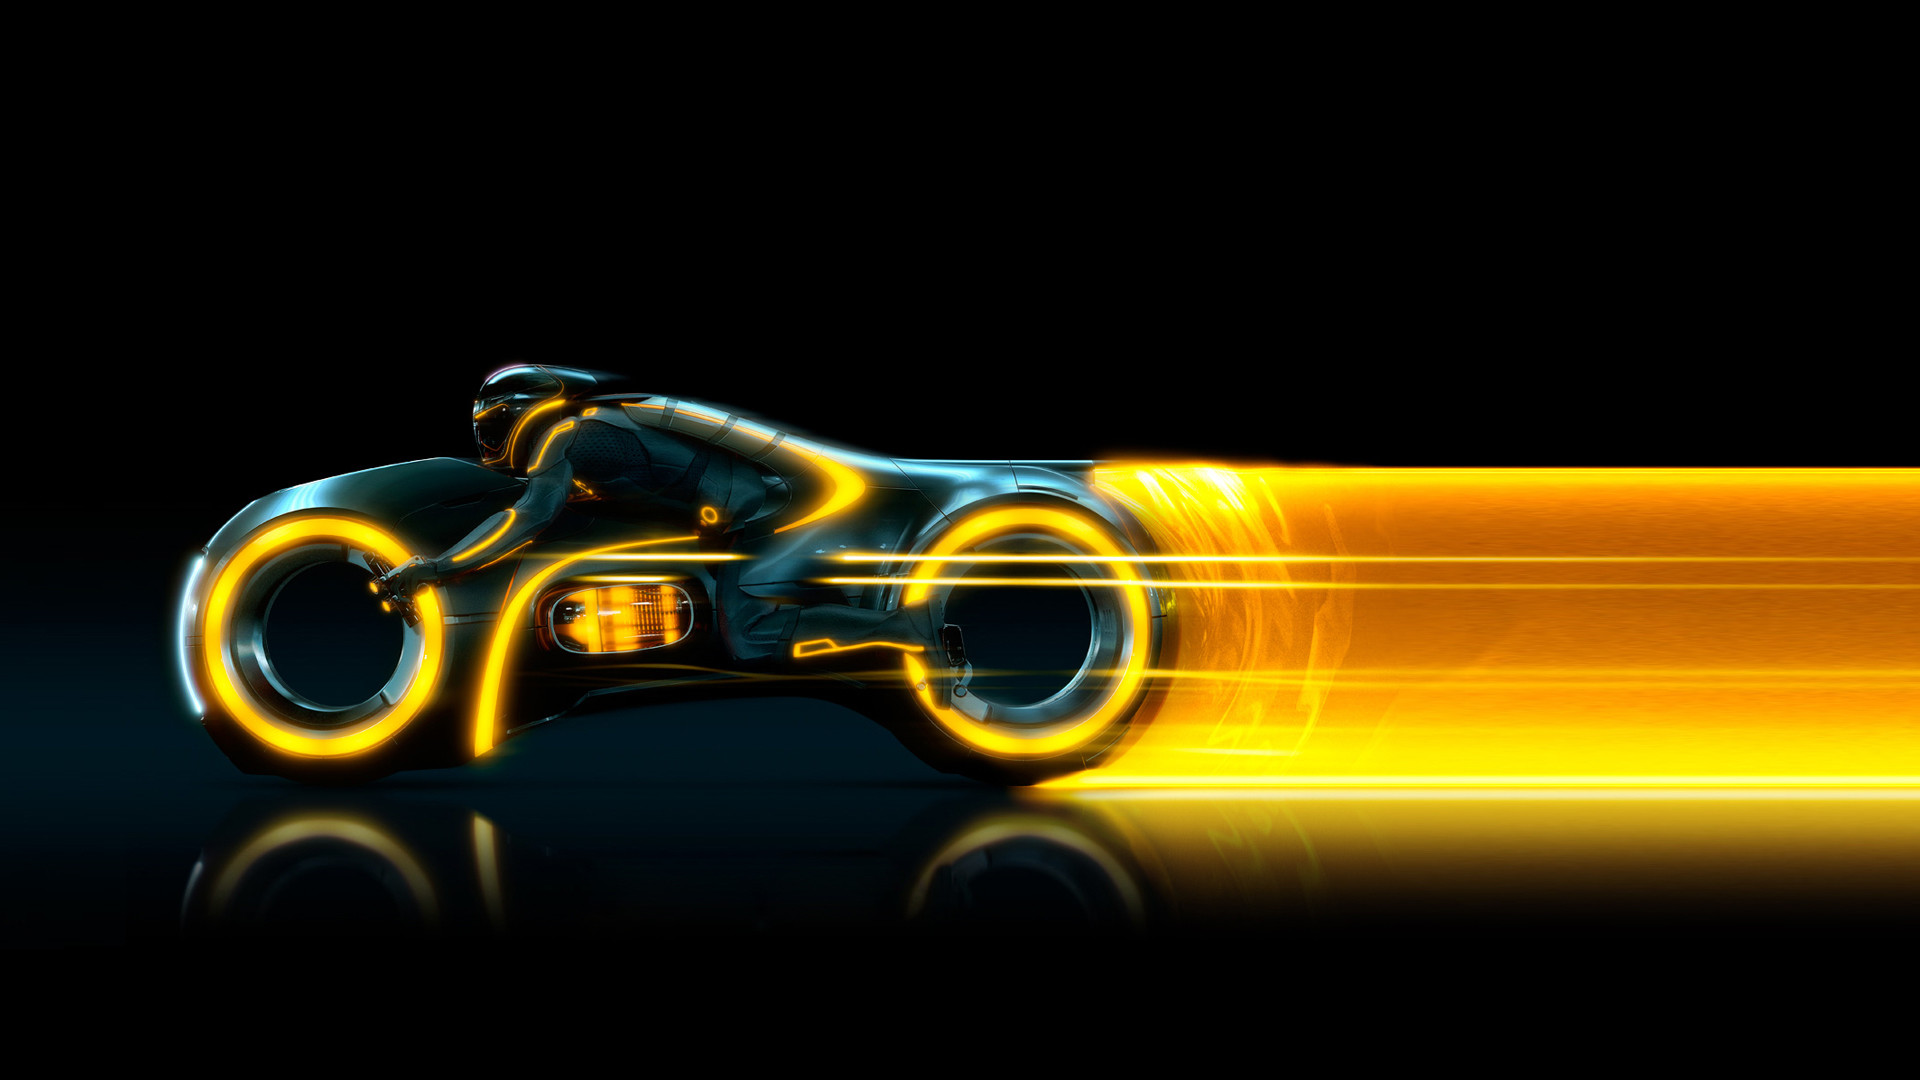 Tron Legacy Background Imgur 1920×1080 Tron Legacy Backgrounds (42  Wallpapers)   Adorable